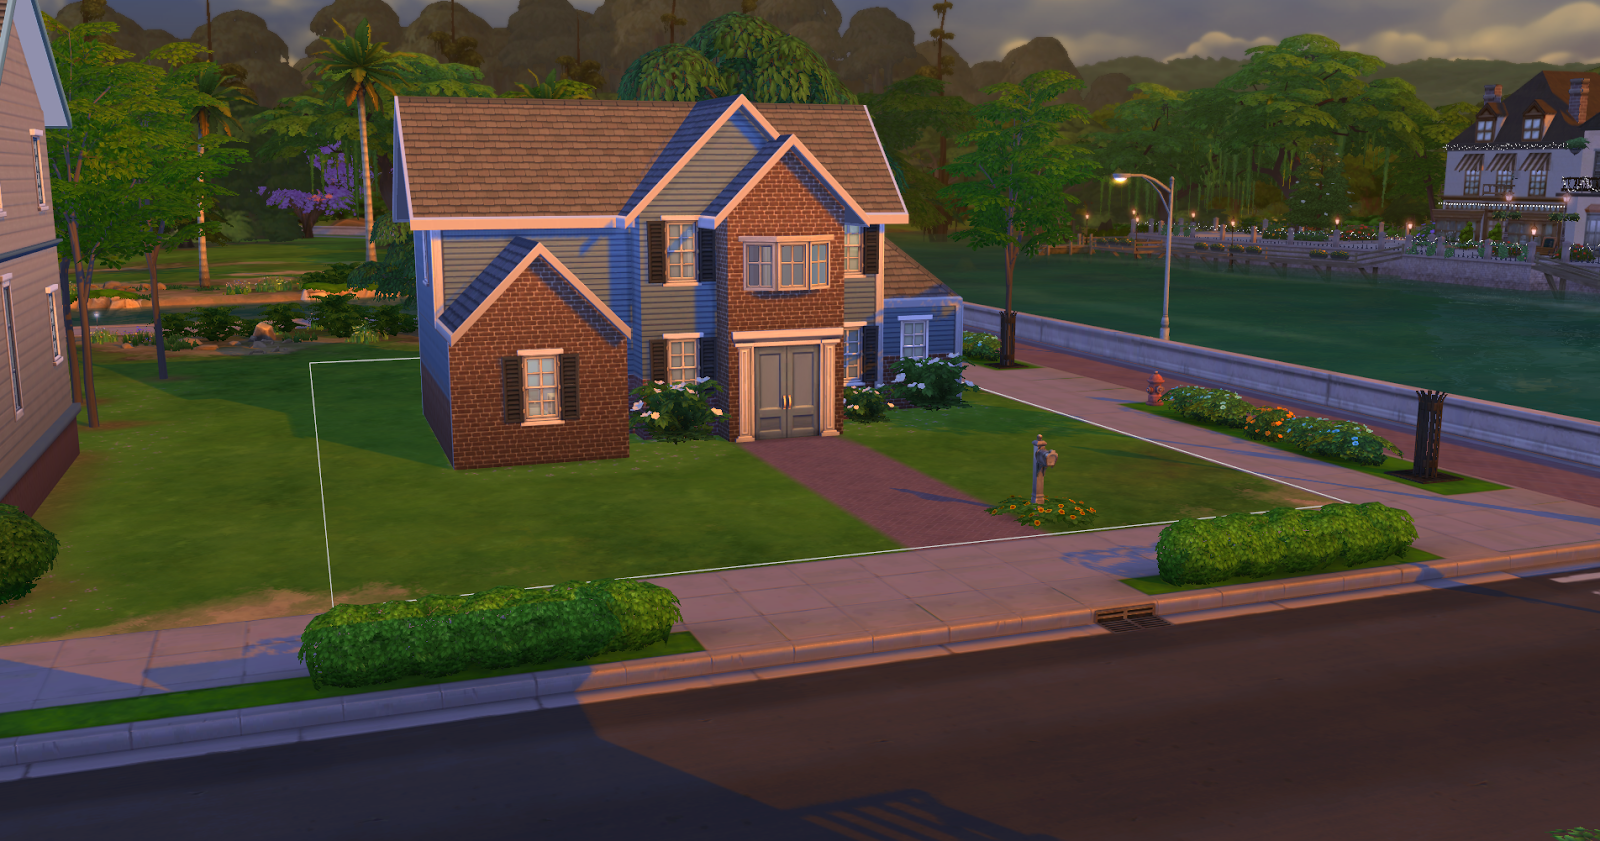 Sims 4 builds simple american starter sims 4 house for Simple american house